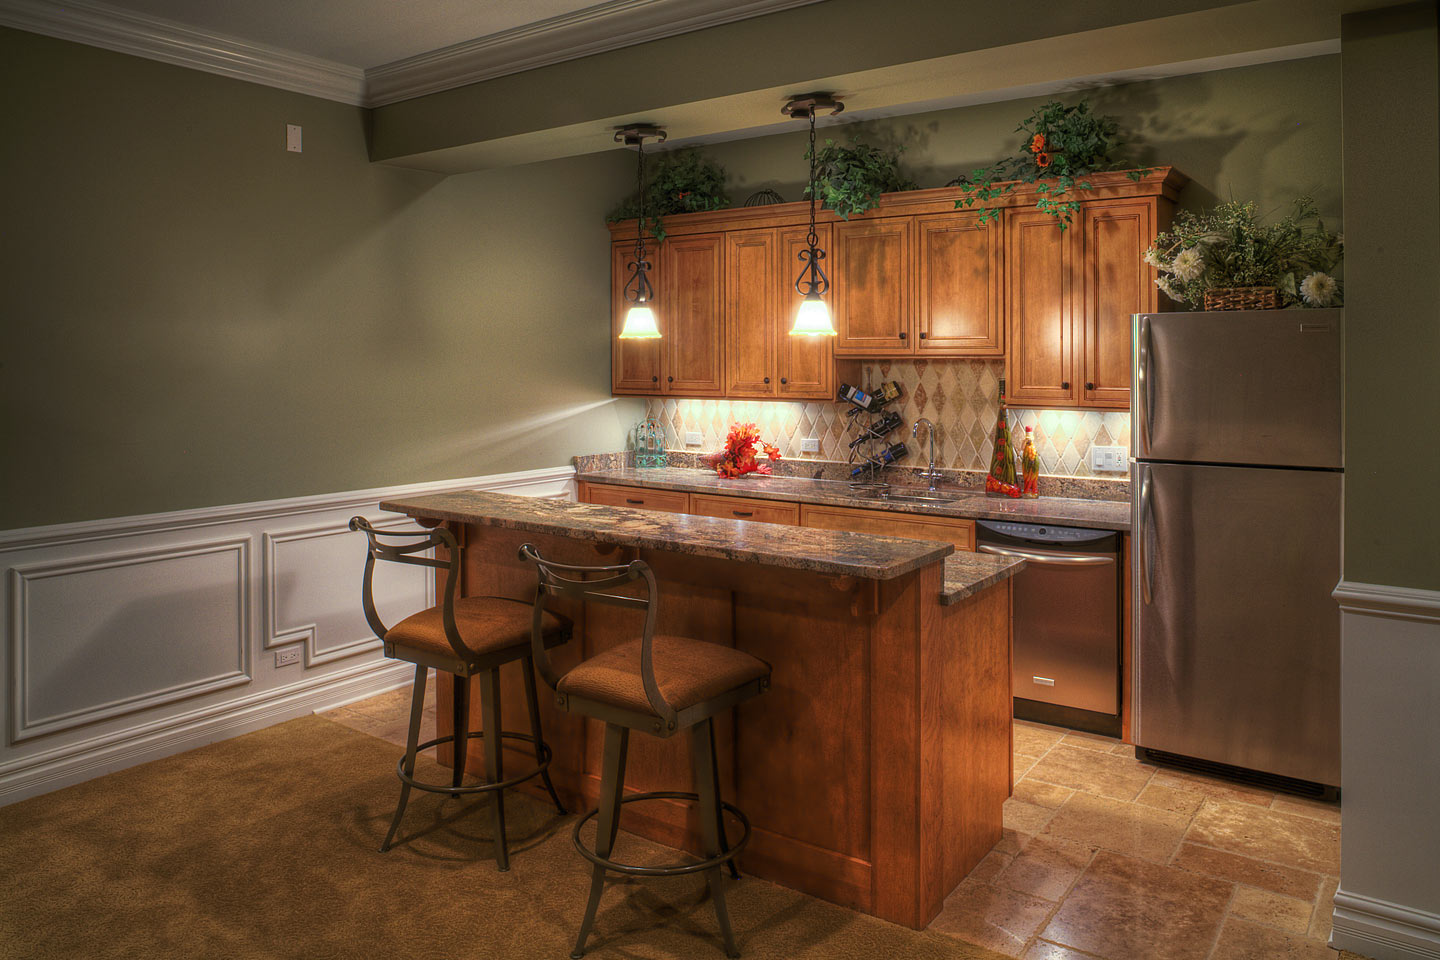 small secondary kitchen located in the basement photographed by Jacob Rosenfeld